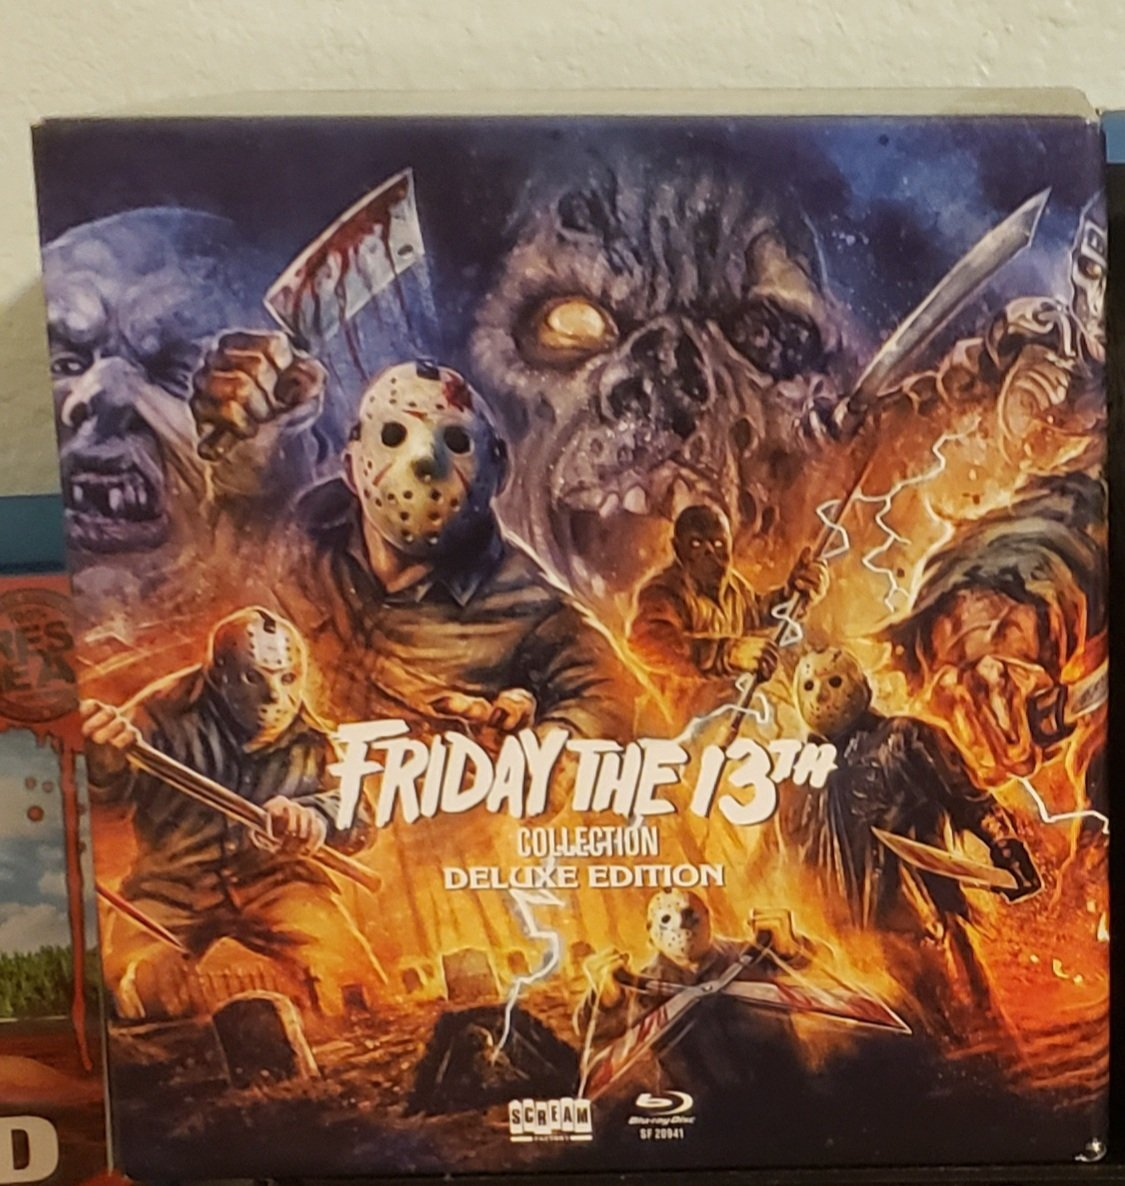 Continuing my #FridayThe13th marathon with part 4 the final chapter